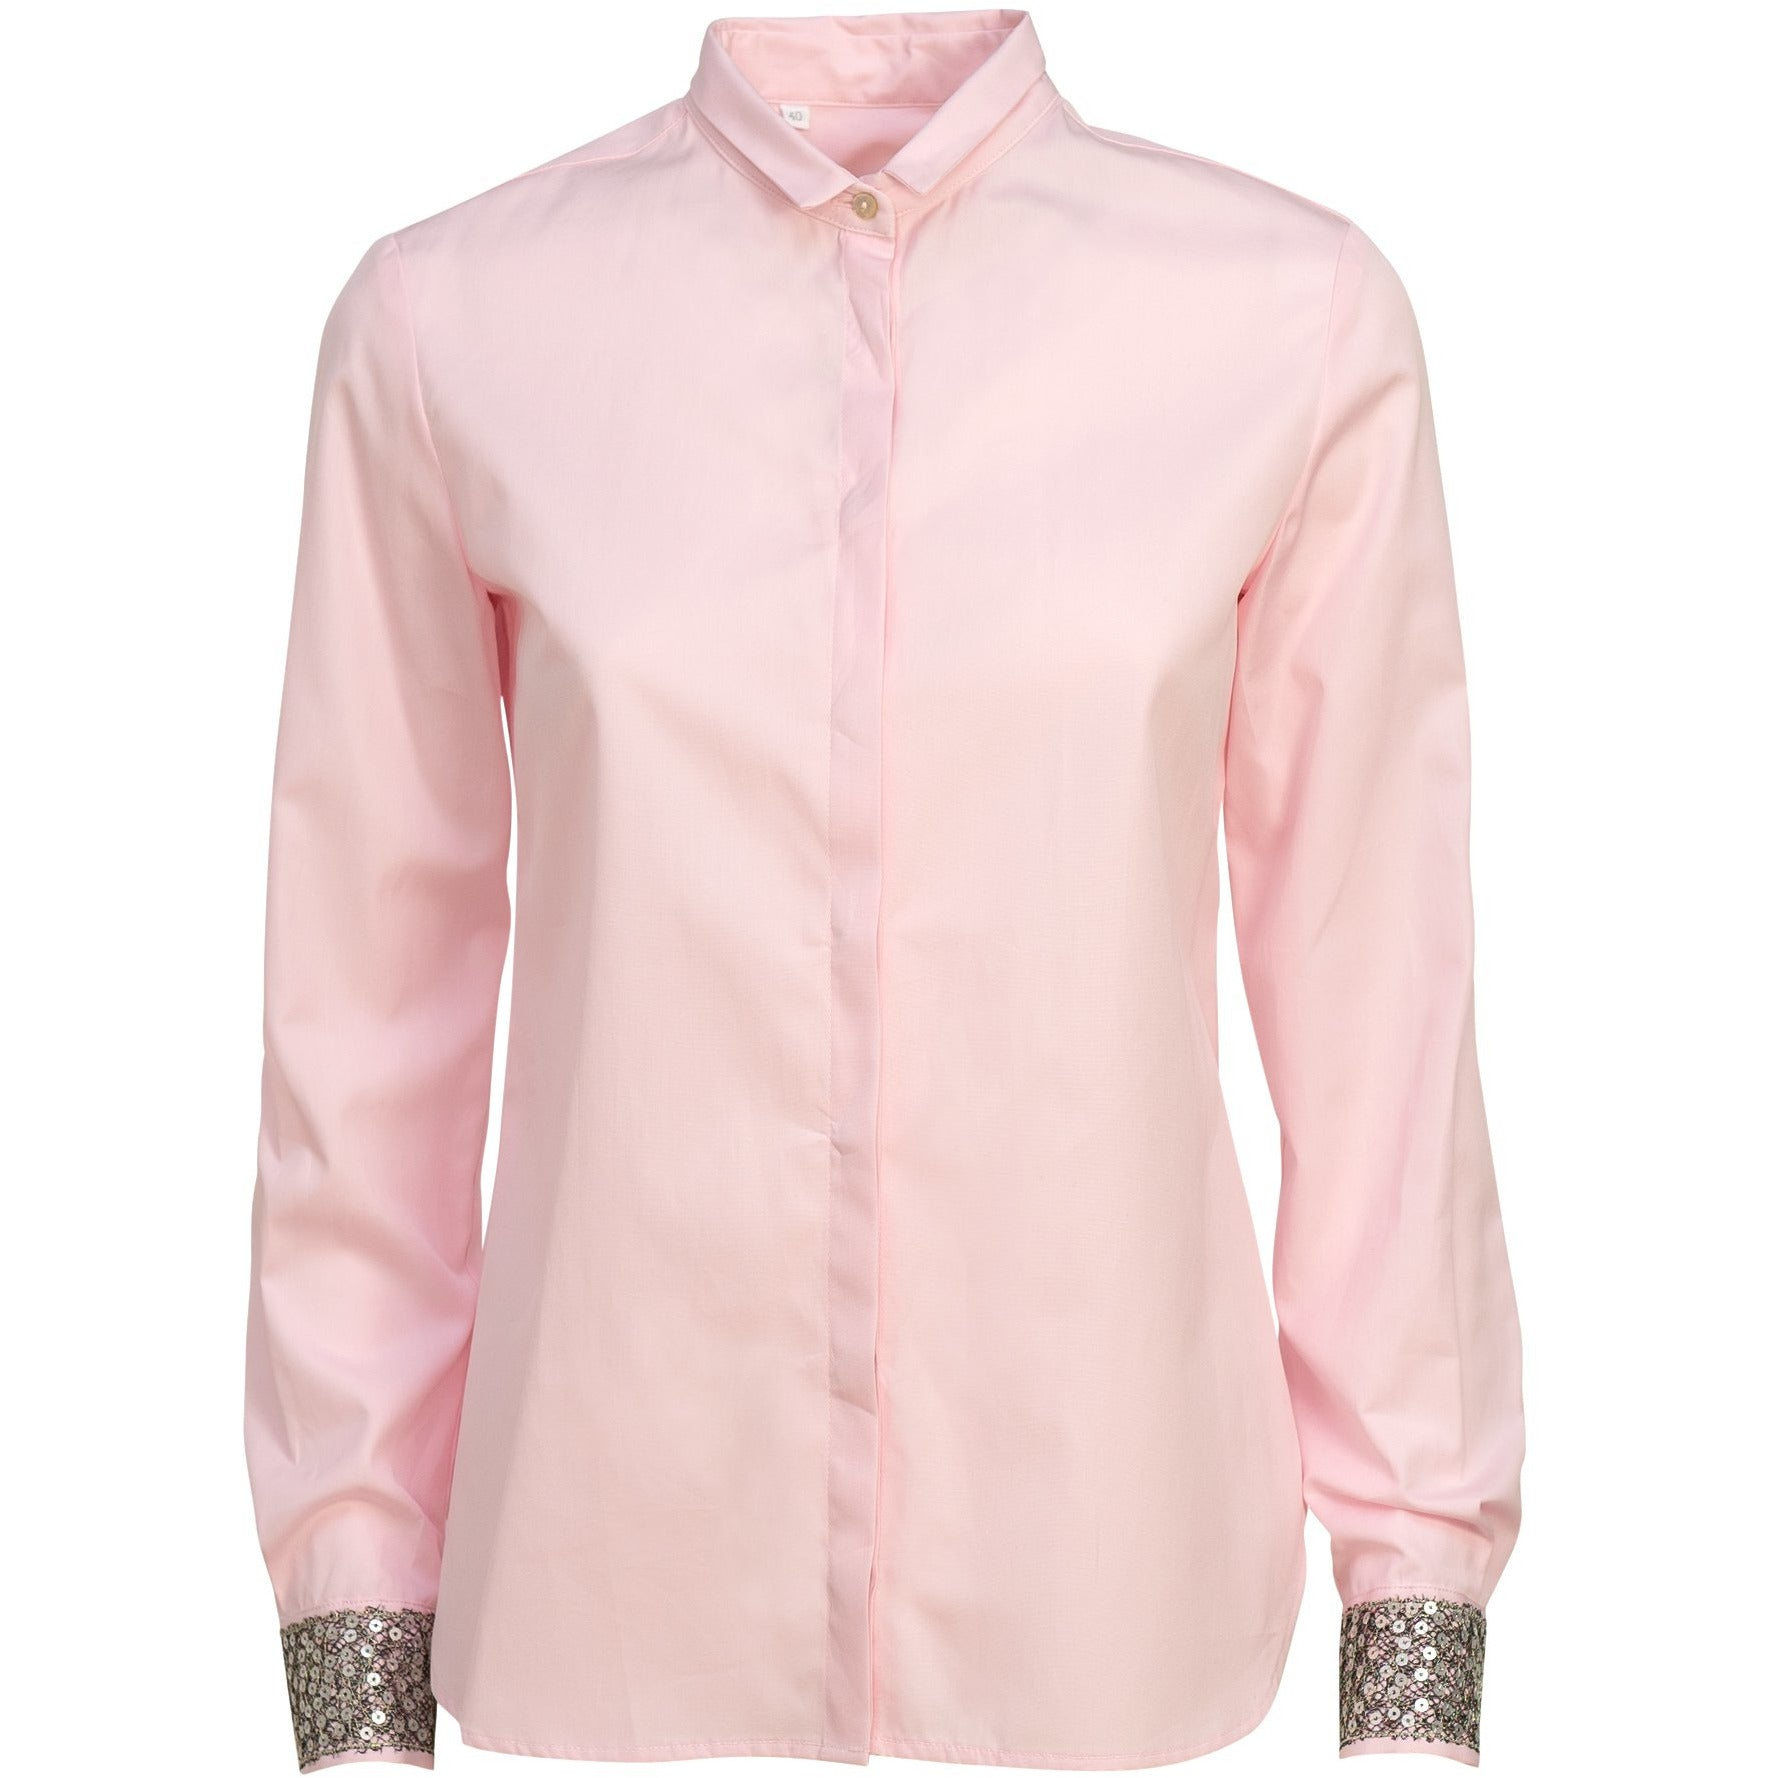 BAR62 Women Shirt in pink - Jennifer Tattanelli